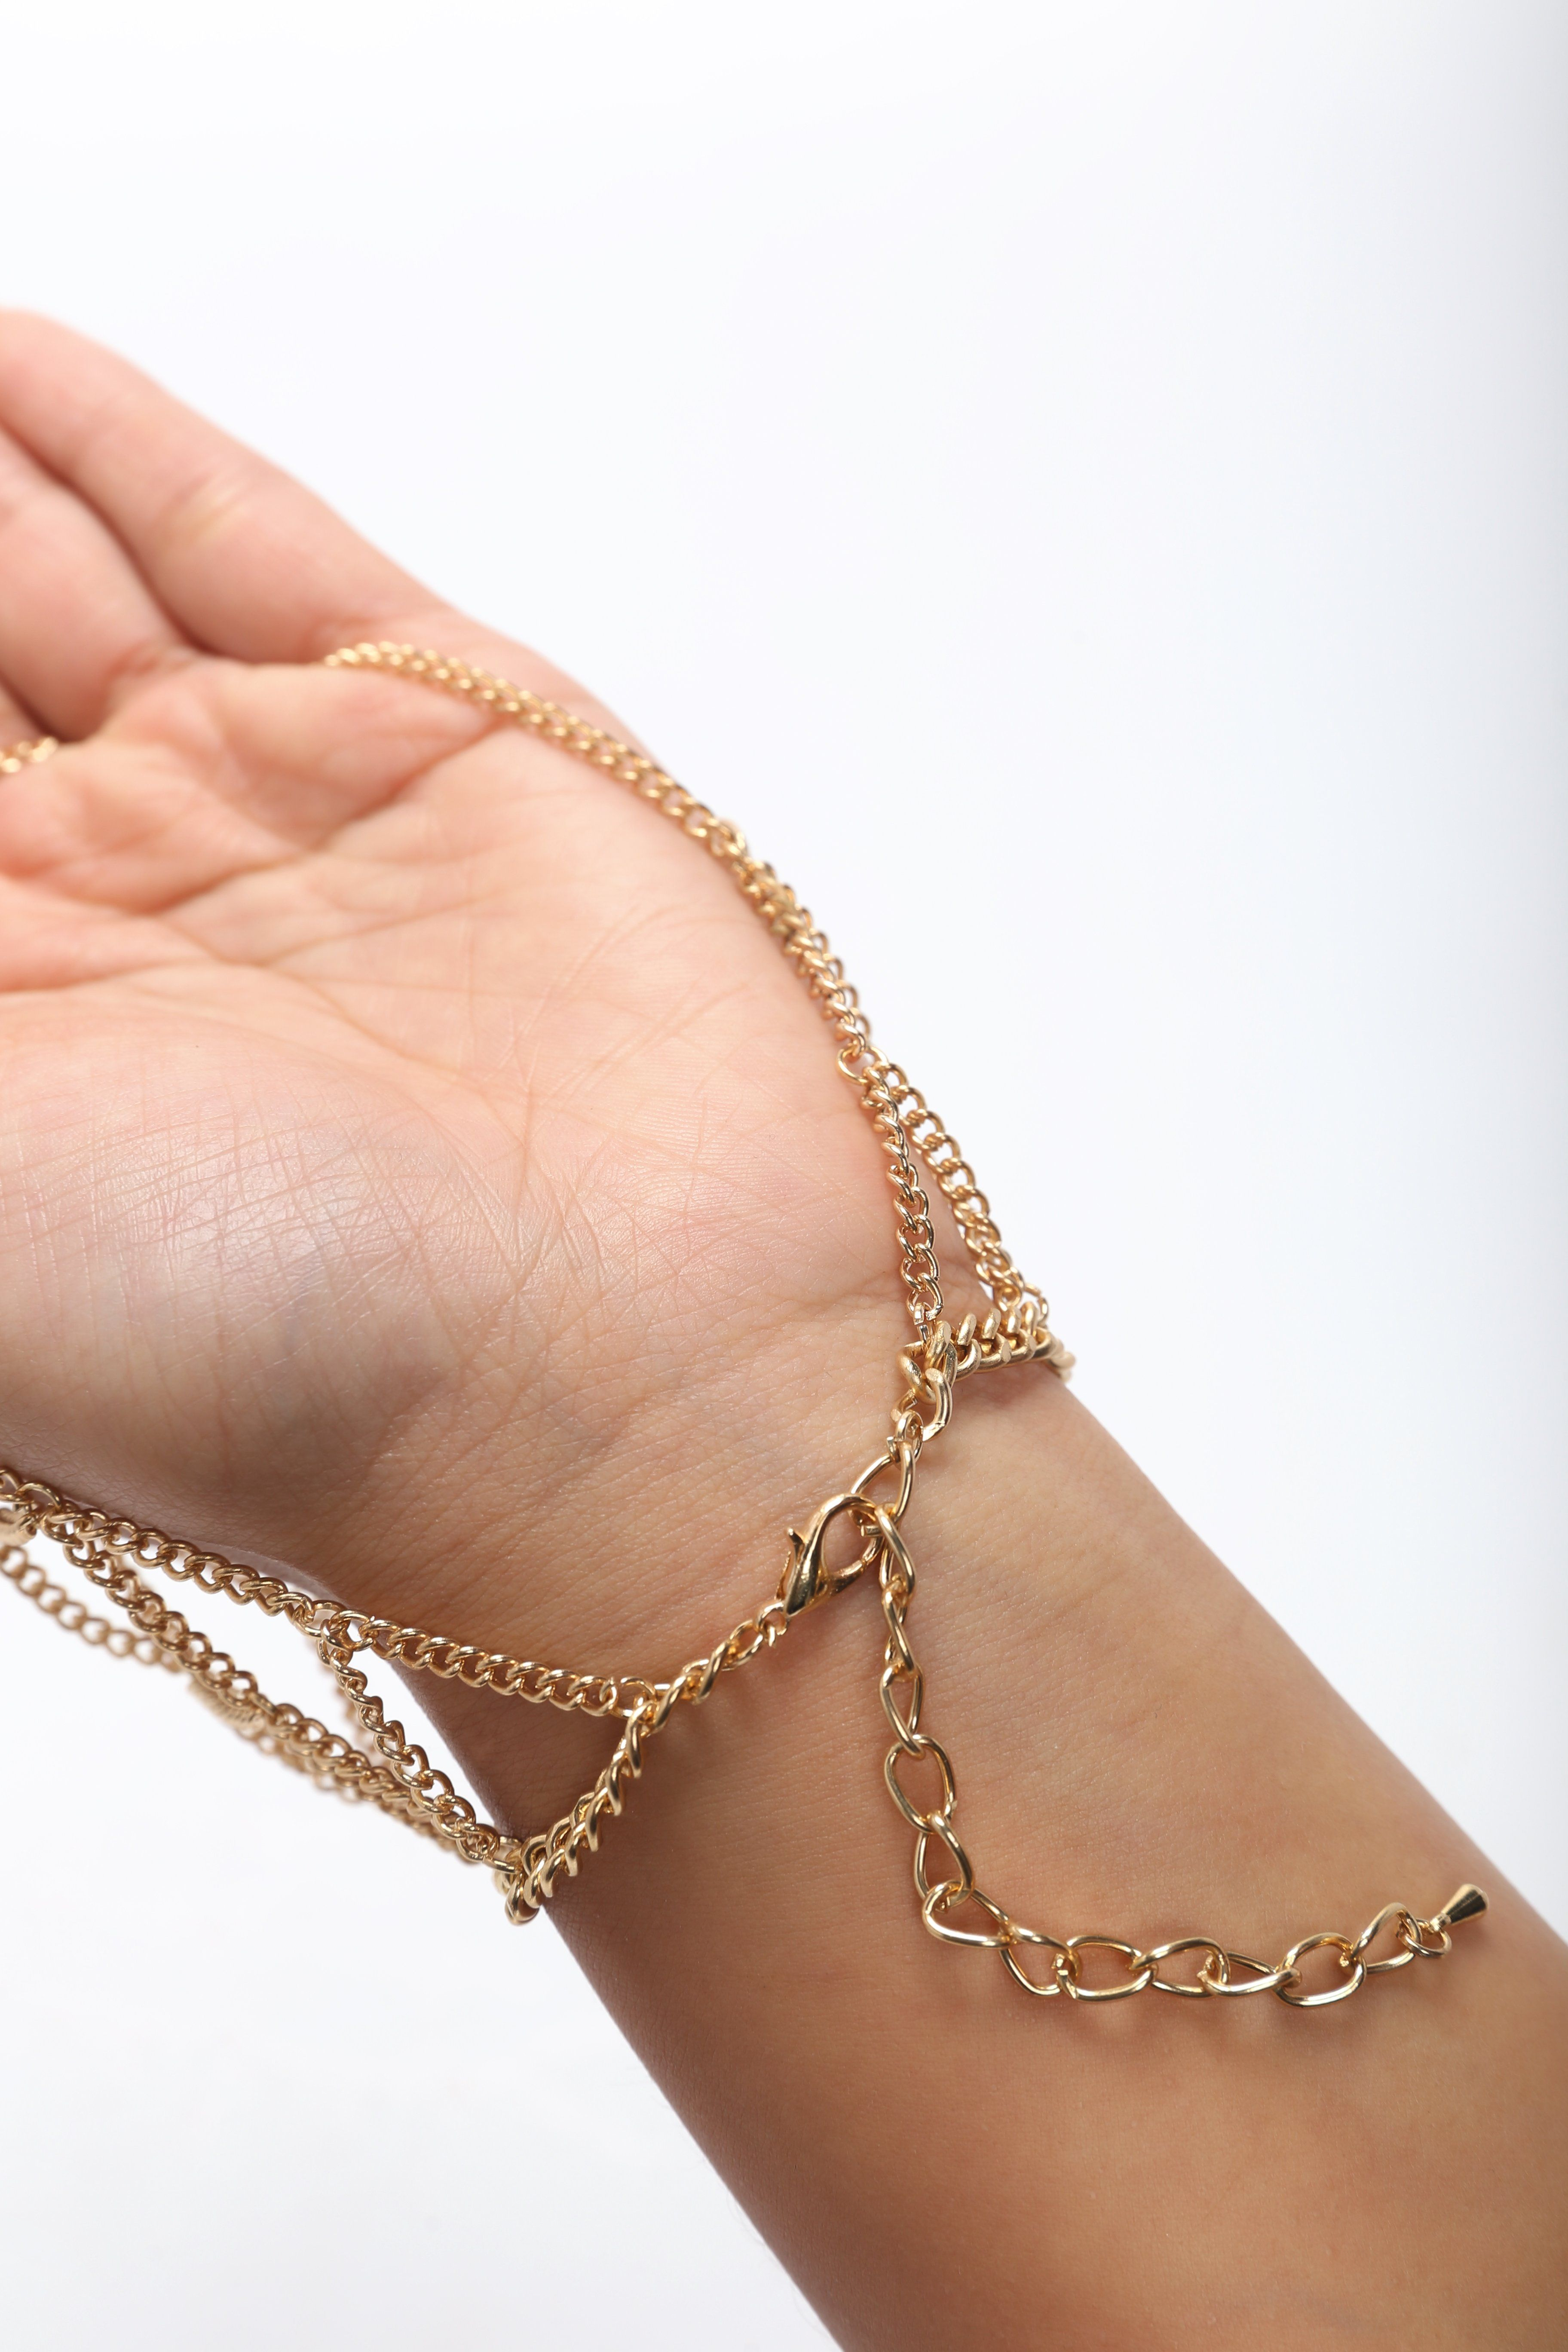 Helping Hand Chain Gold Hand chain, Body chain jewelry